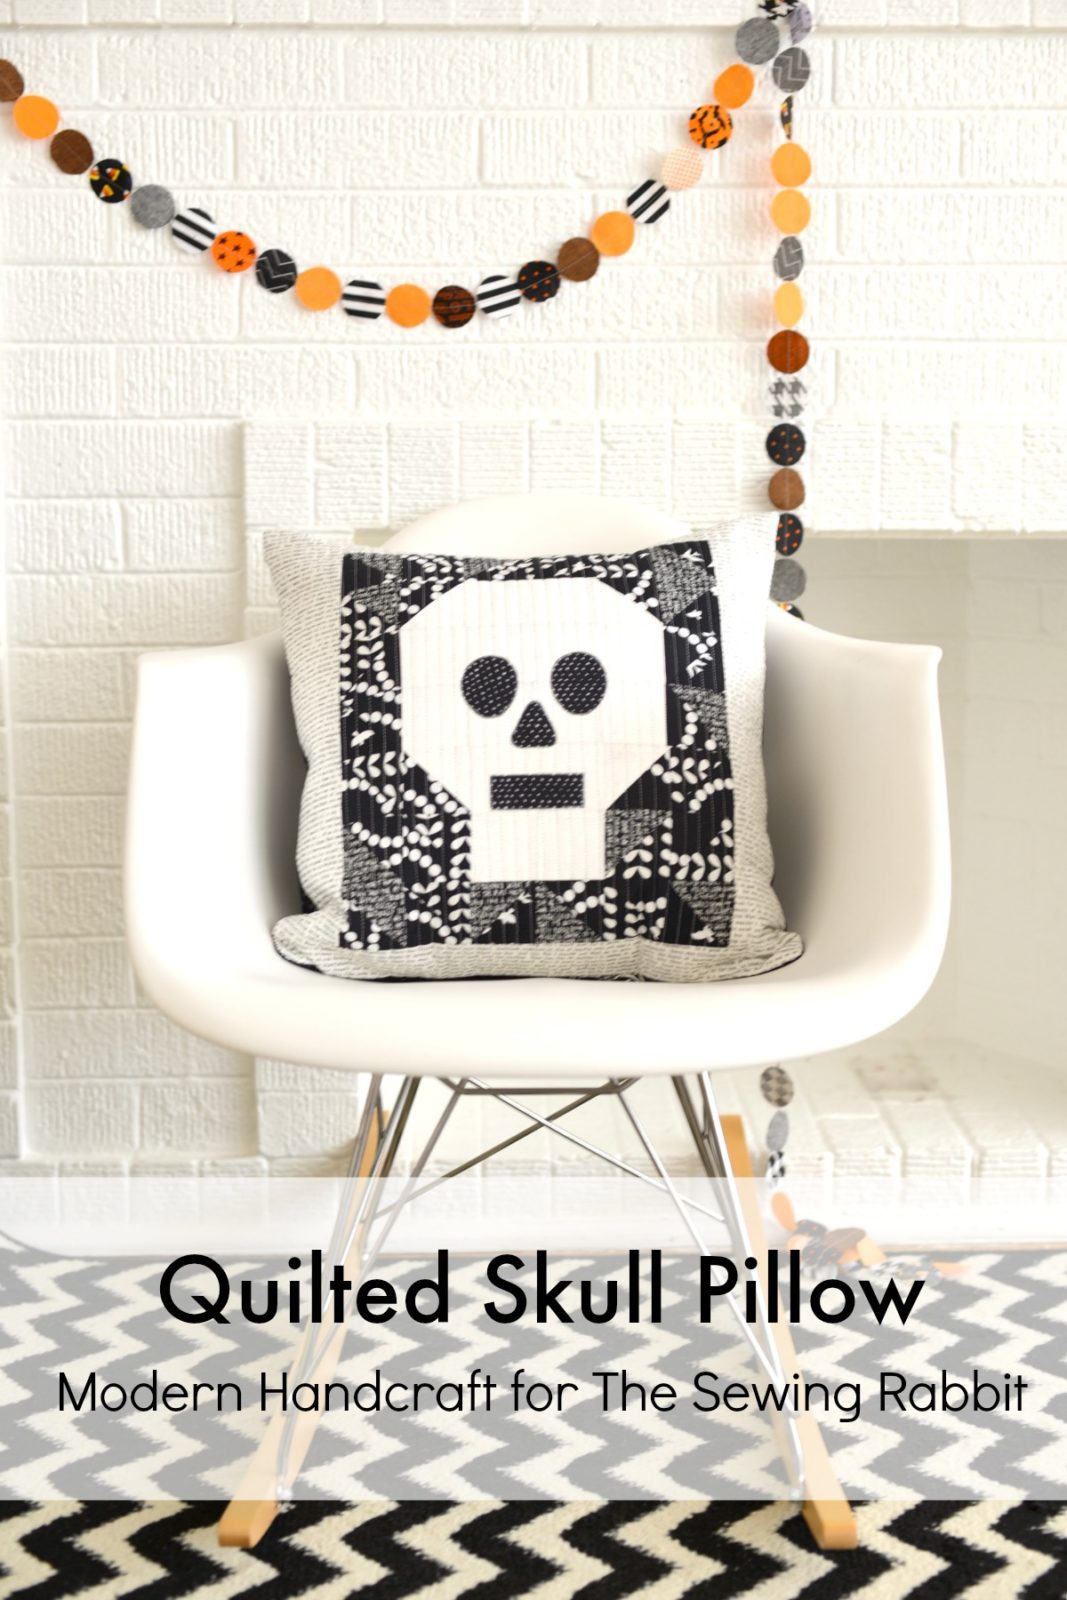 Modern Handcraft for The Sewing Rabbit // Quilted Skull Pillow